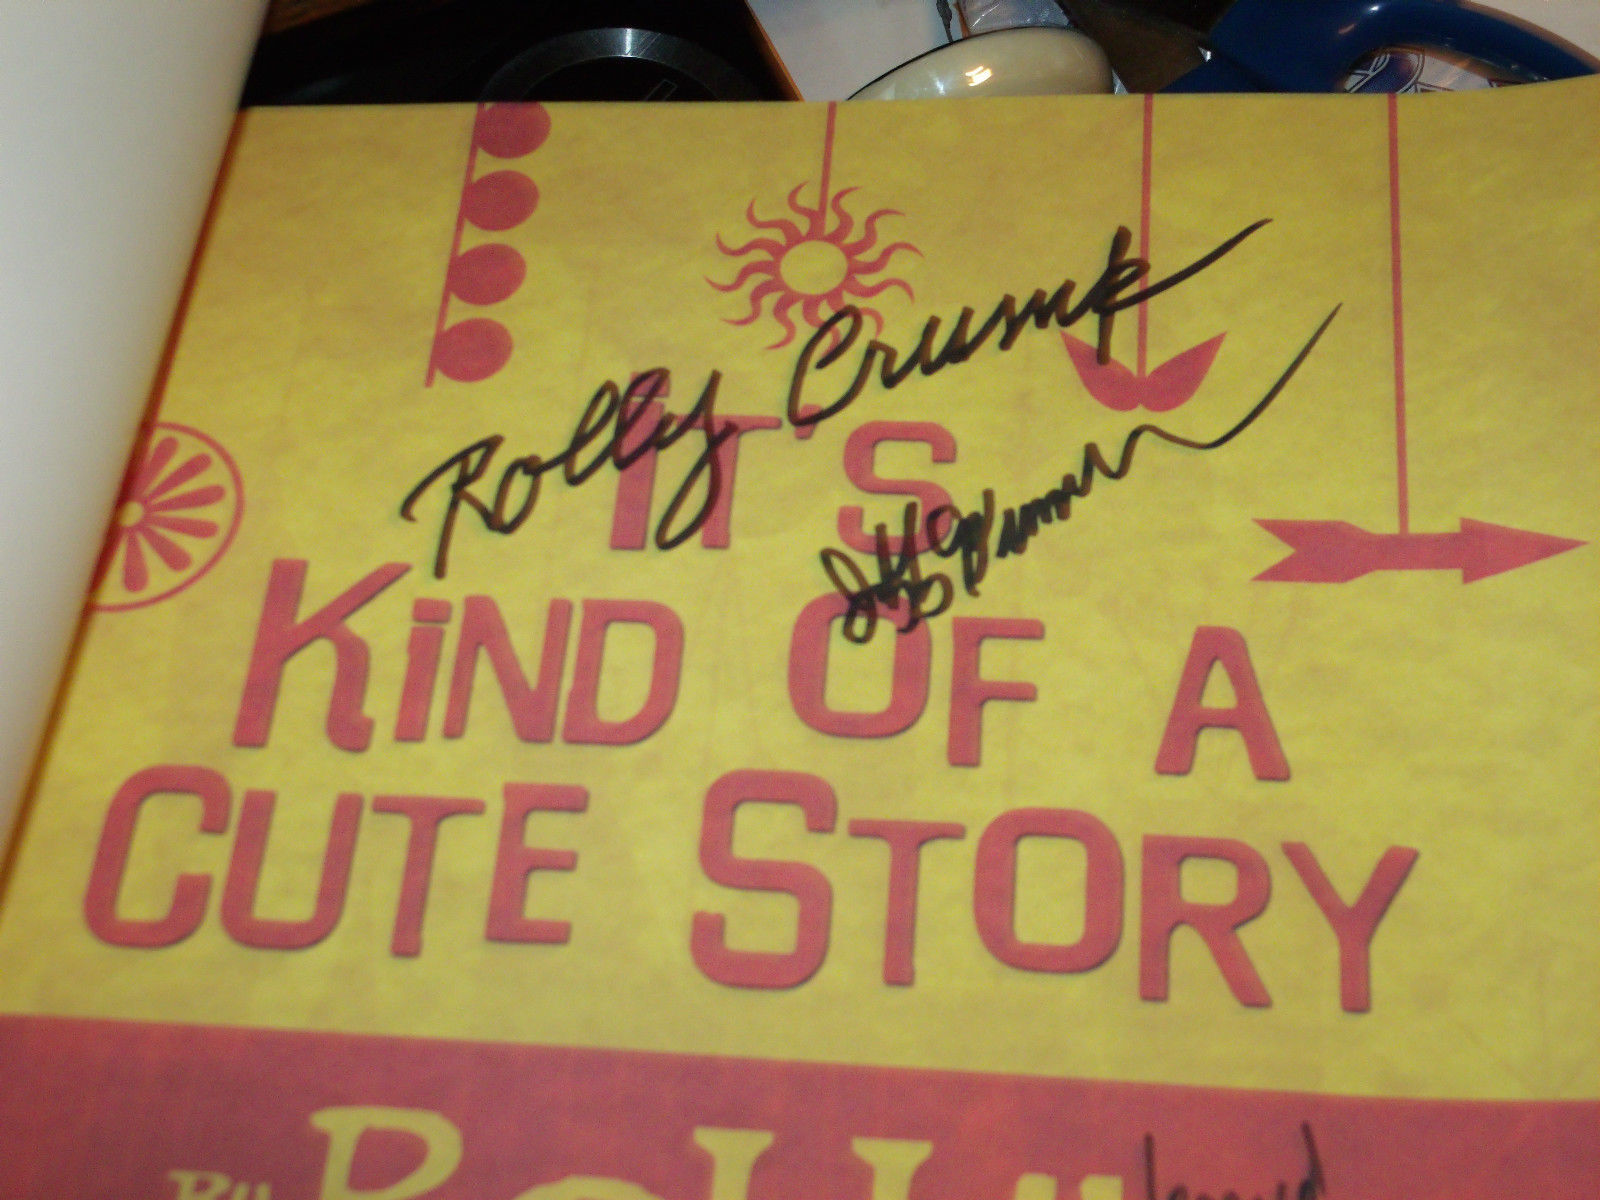 It's Kind of a Cute Story SIGNED 5X BY ROLLY CRUMP & Jeff Heimbuch +3